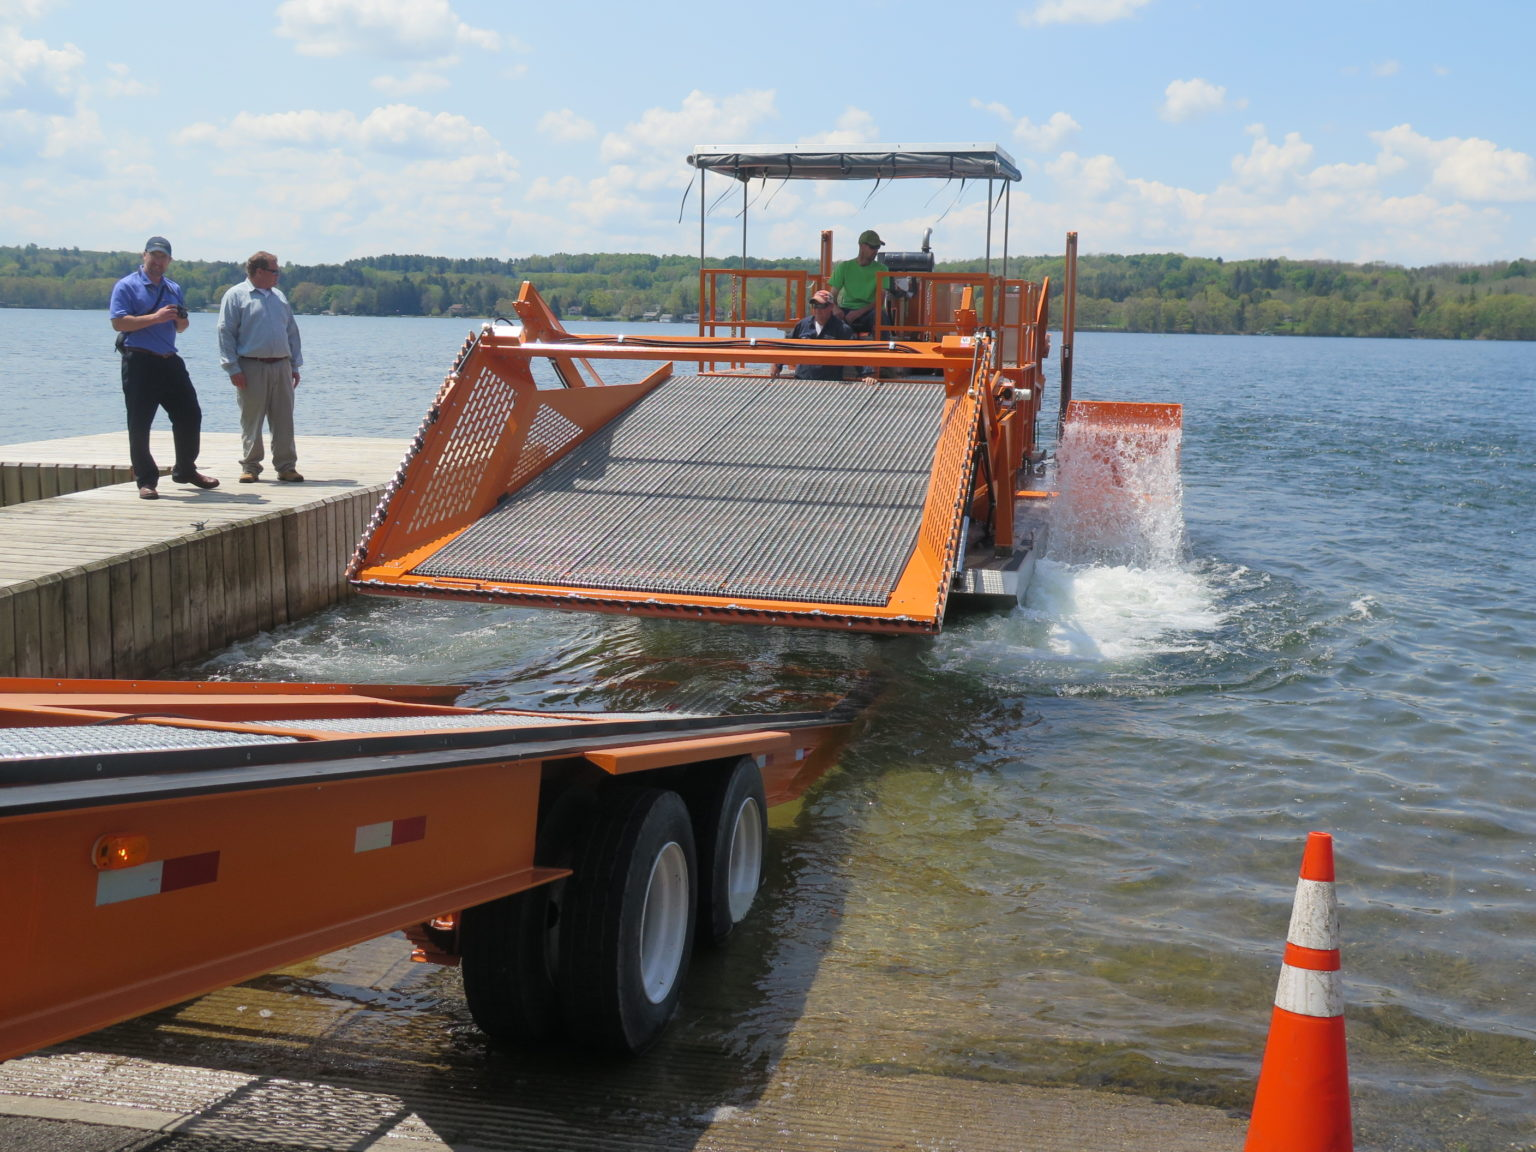 Alphaboats FX-11 Waterweed Harvester being Launched from a Transport Trailer